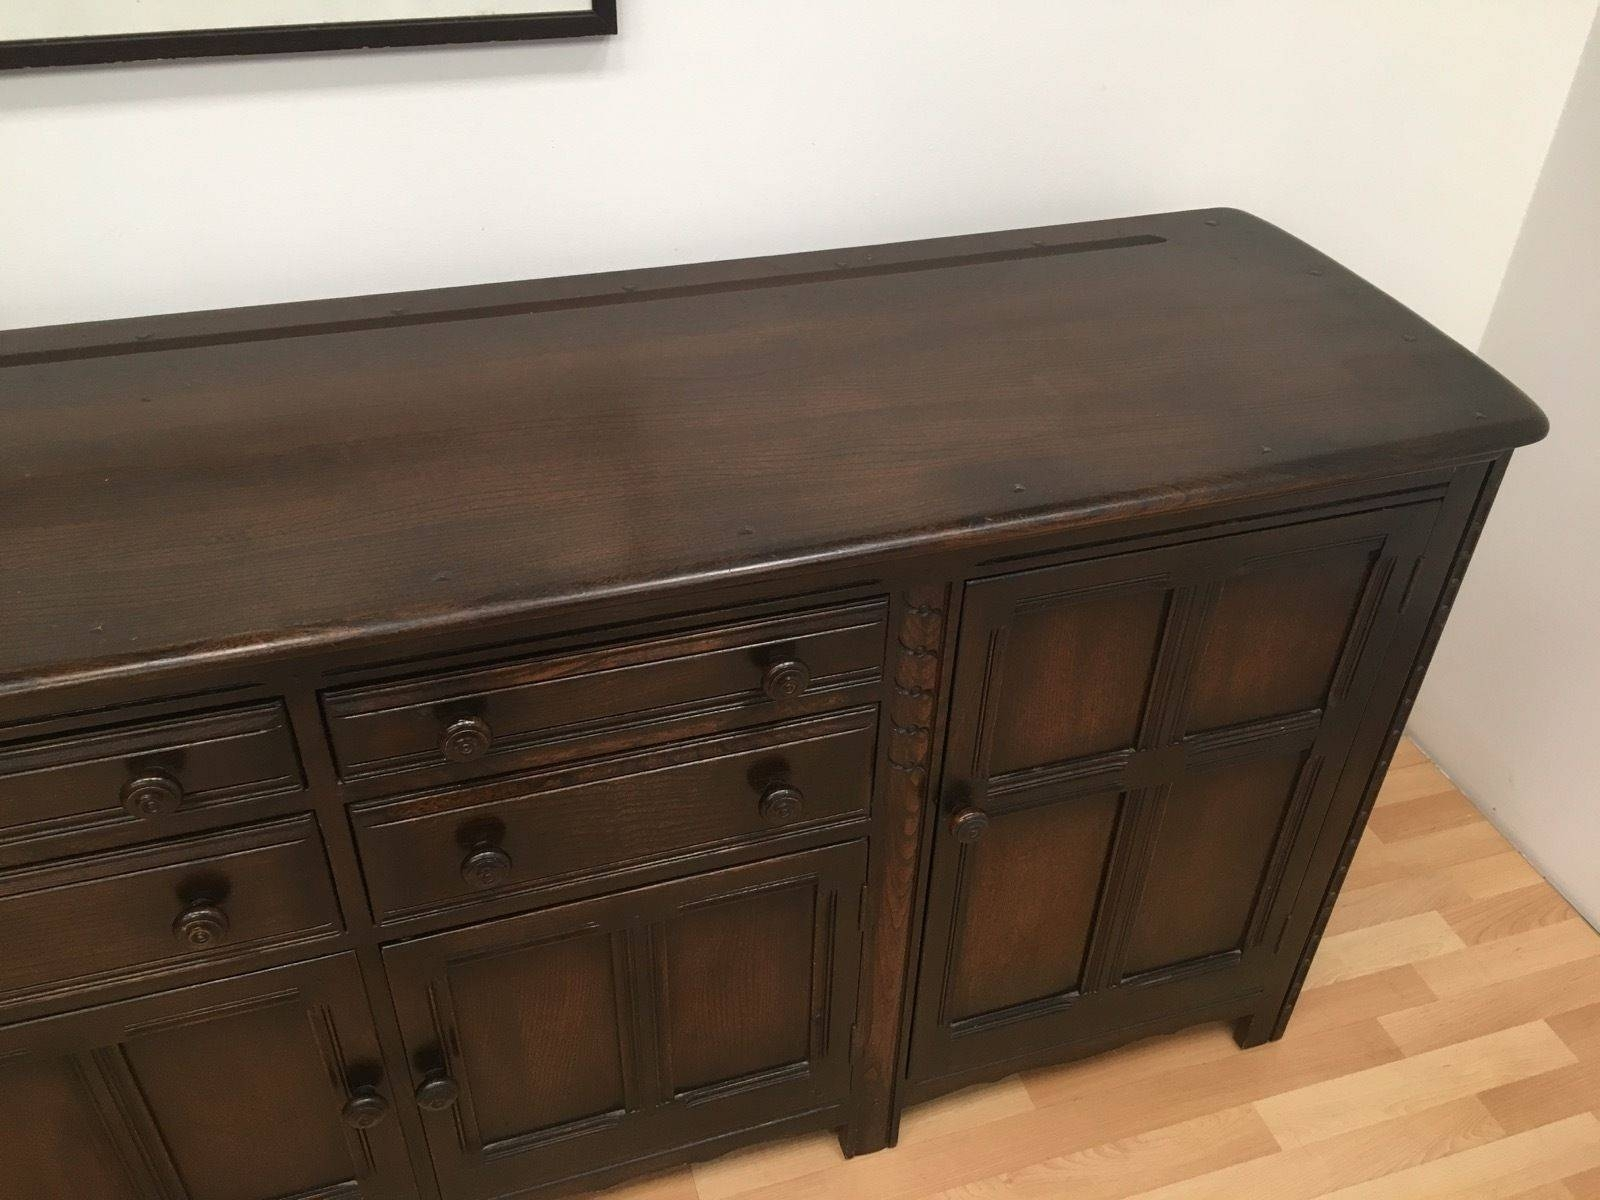 Rare Large Vintage Ercol 7 Foot Mid Century Sideboard In Dark Inside 7 Foot Sideboards (View 4 of 15)